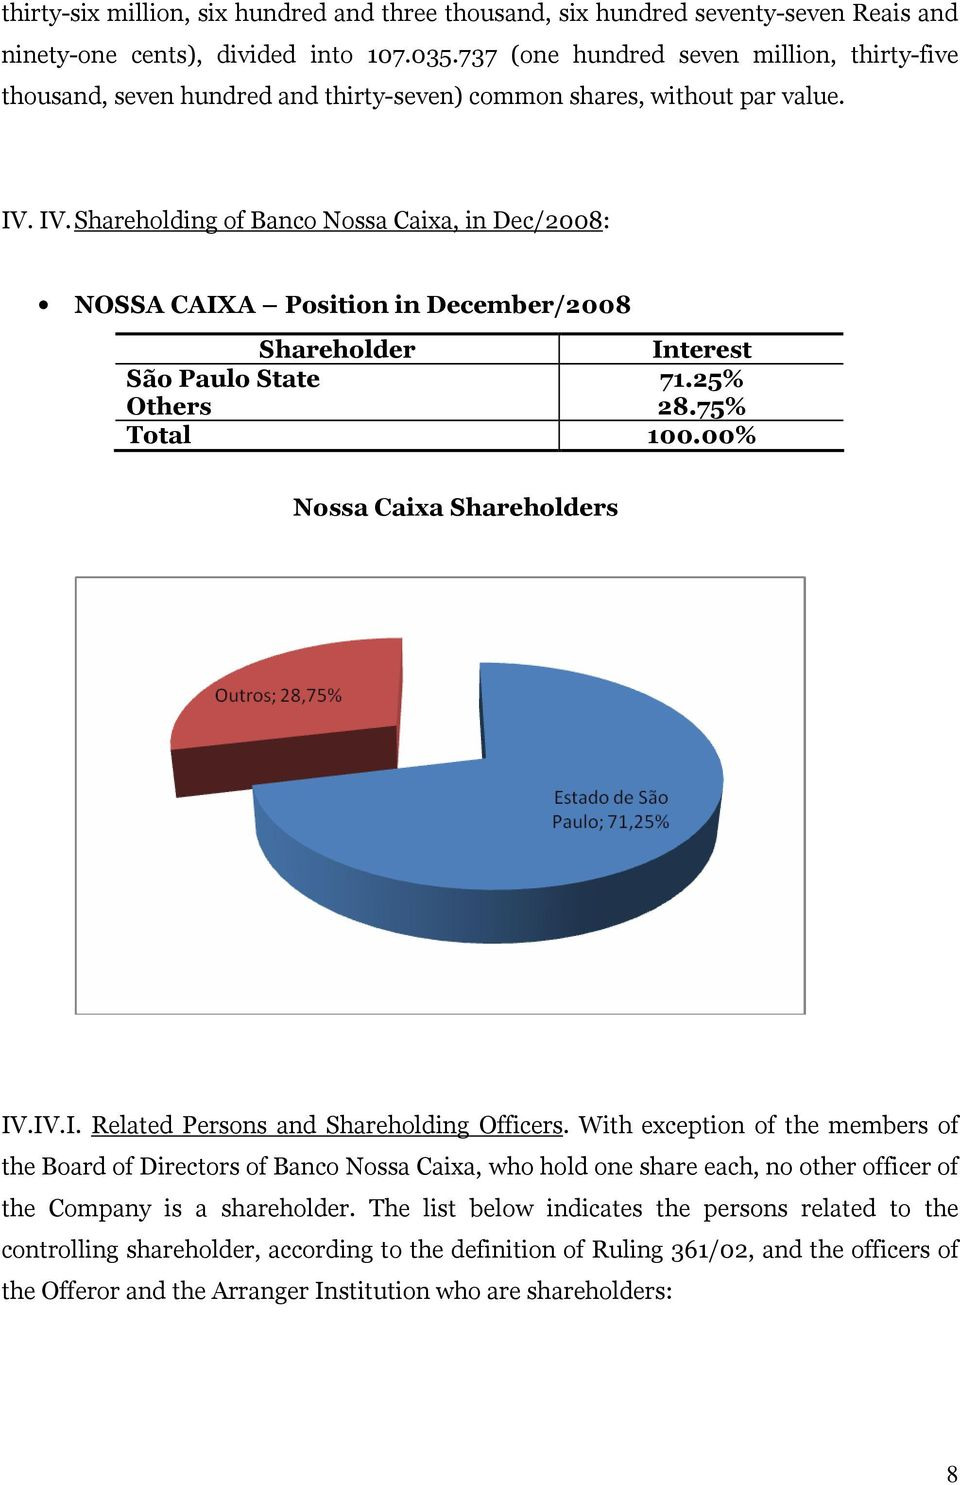 IV. Shareholding of Banco Nossa Caixa, in Dec/2008: NOSSA CAIXA Position in December/2008 Shareholder Interest São Paulo State 71.25% Others 28.75% Total 100.00% Nossa Caixa Shareholders IV.IV.I. Related Persons and Shareholding Officers.